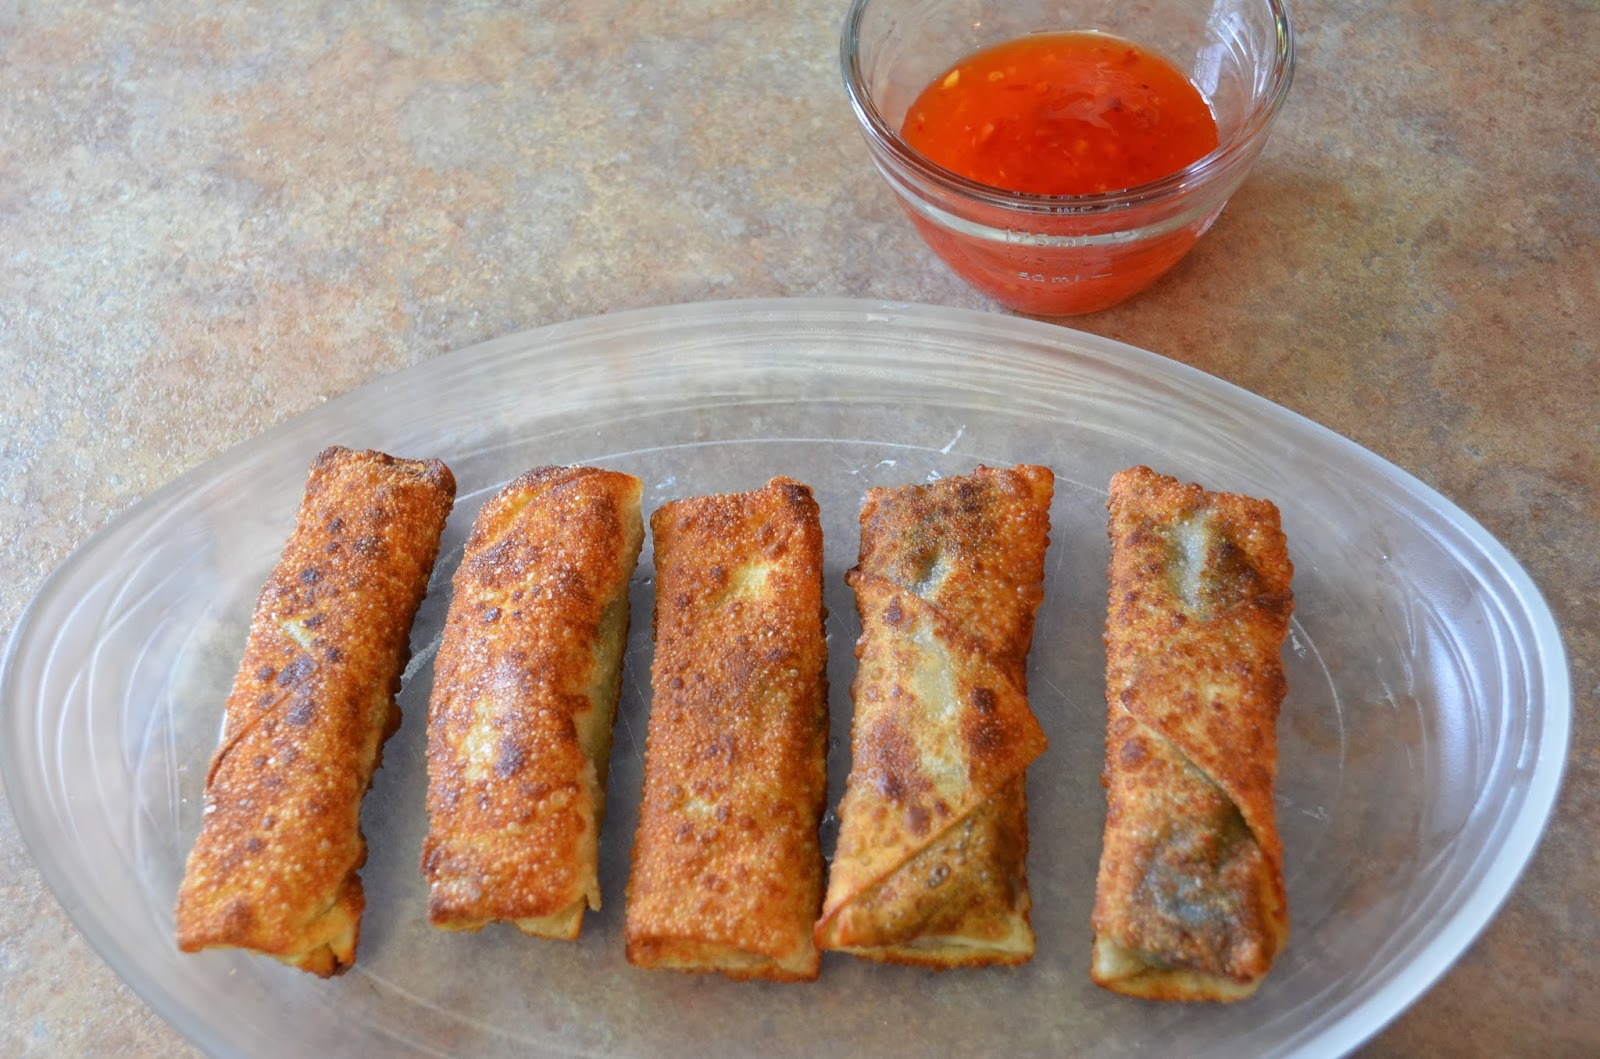 black bean spring rolls recipe, vegetarian spring rolls recipe, vegan spring rolls recipe, sweet chili dipping sauce recipe, black bean vegetarian spring rolls recipe, healthy spring rolls recipe, healthy vegetarian recipe